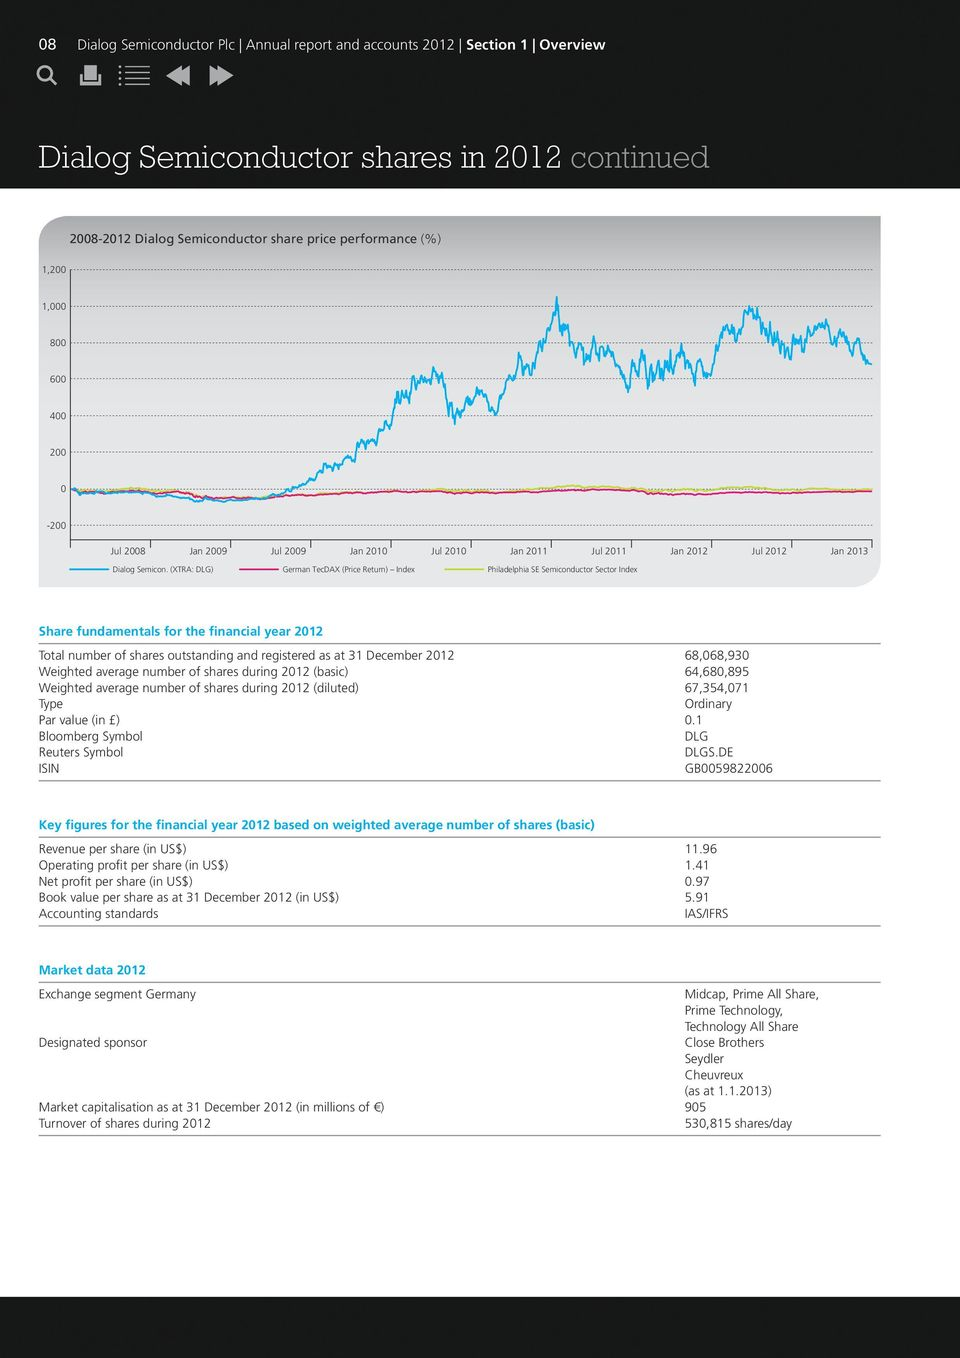 (XTRA: DLG) Jul 2009 Jan 2010 Jul 2010 German TecDAX (Price Return) Index Jan 2011 Jul 2011 Jan 2012 Jul 2012 Philadelphia SE Semiconductor Sector Index Share fundamentals for the financial year 2012